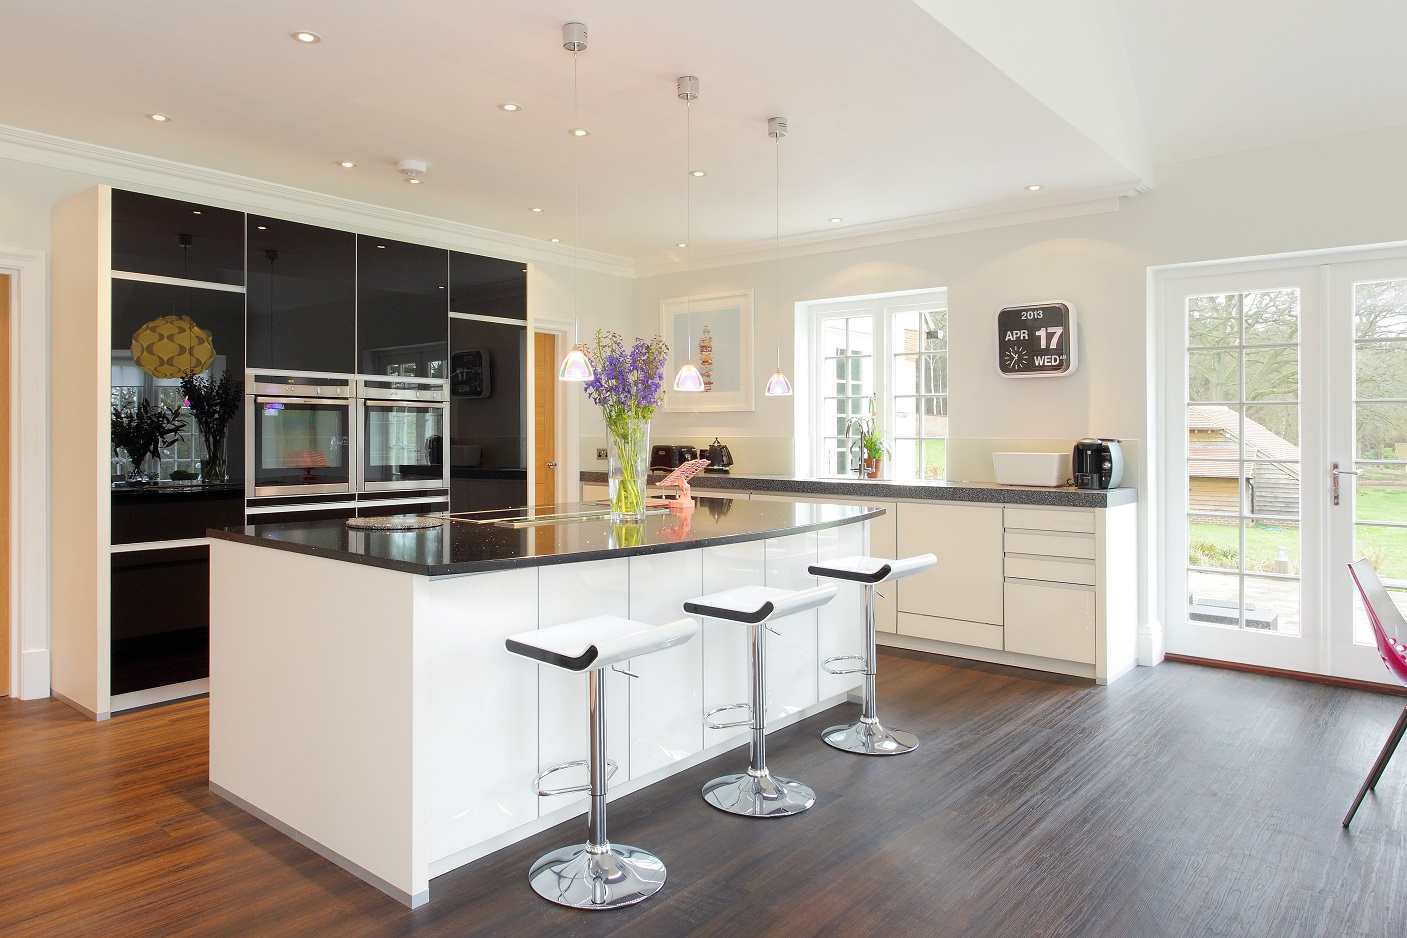 hampshire kitchens has installed this fabulous high gloss black and magnolia kitchen plus matching utility room in a 1930s home just outside farnham - Family Kitchen